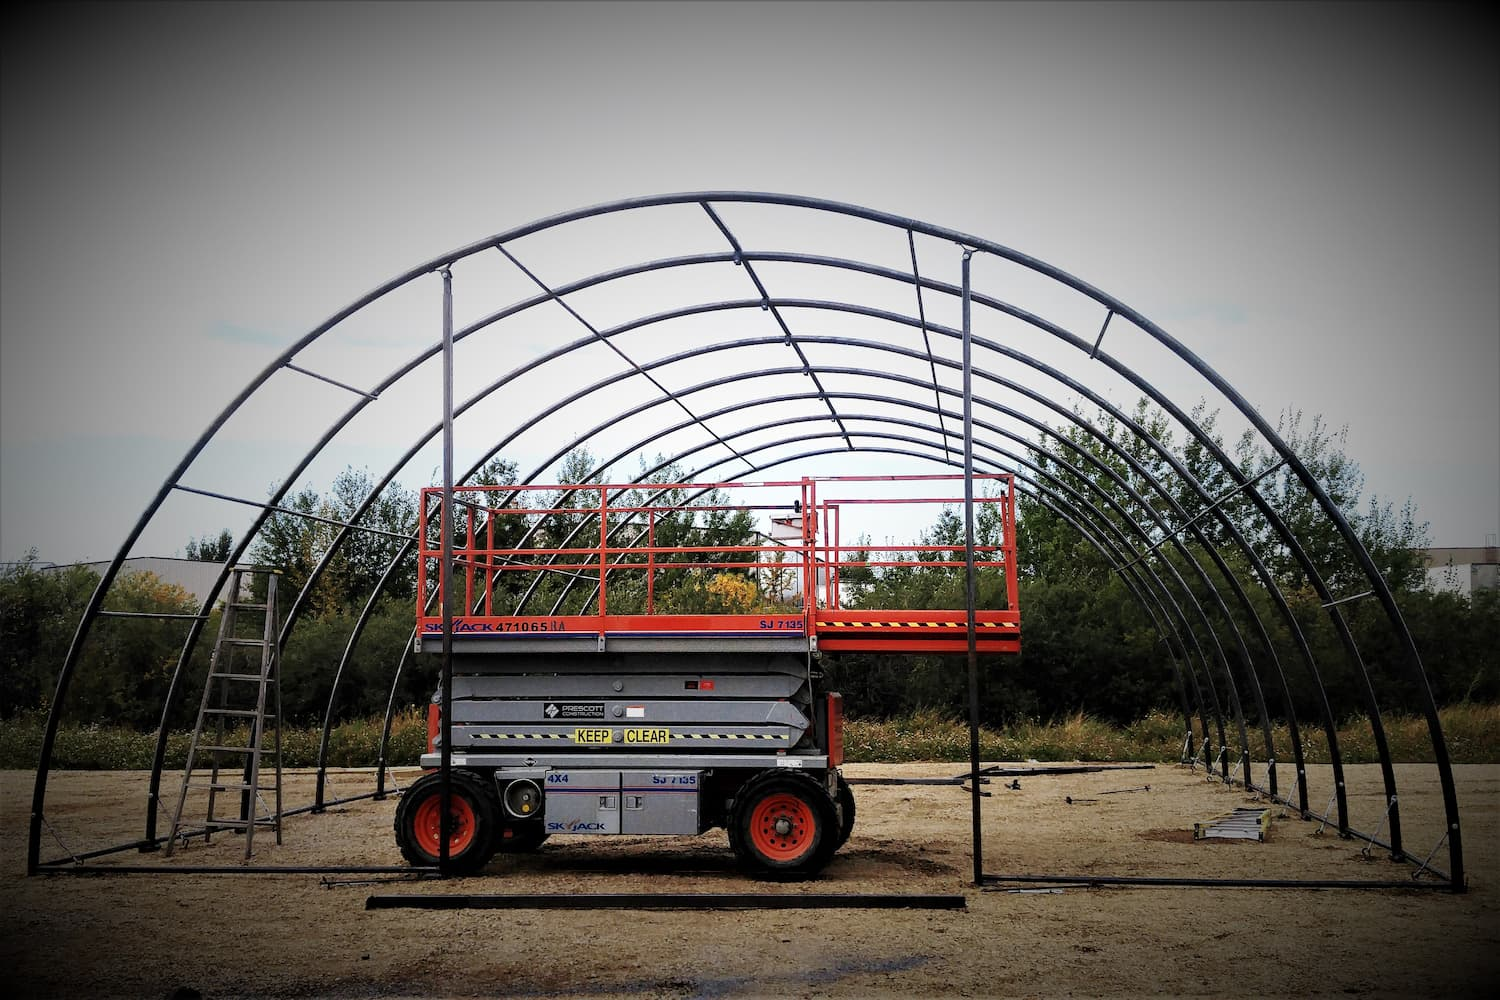 fabric building setup showing exposed HSS steel frame and machinery